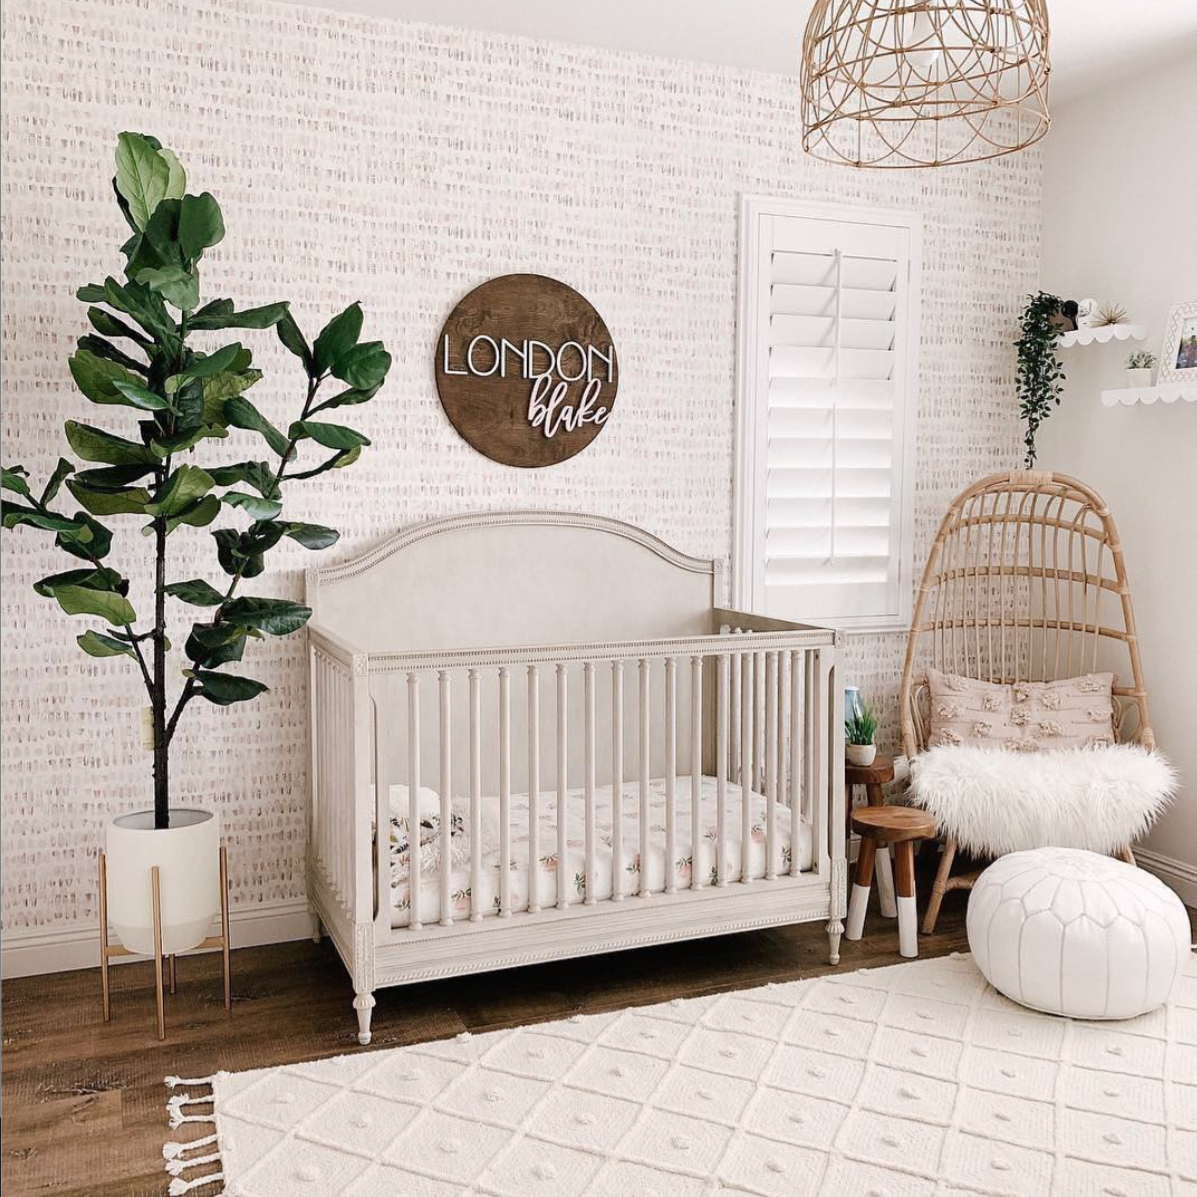 Everything We Know About Beyonce S Nursery Design Ideas: Here's What's Trending In The Nursery This Week